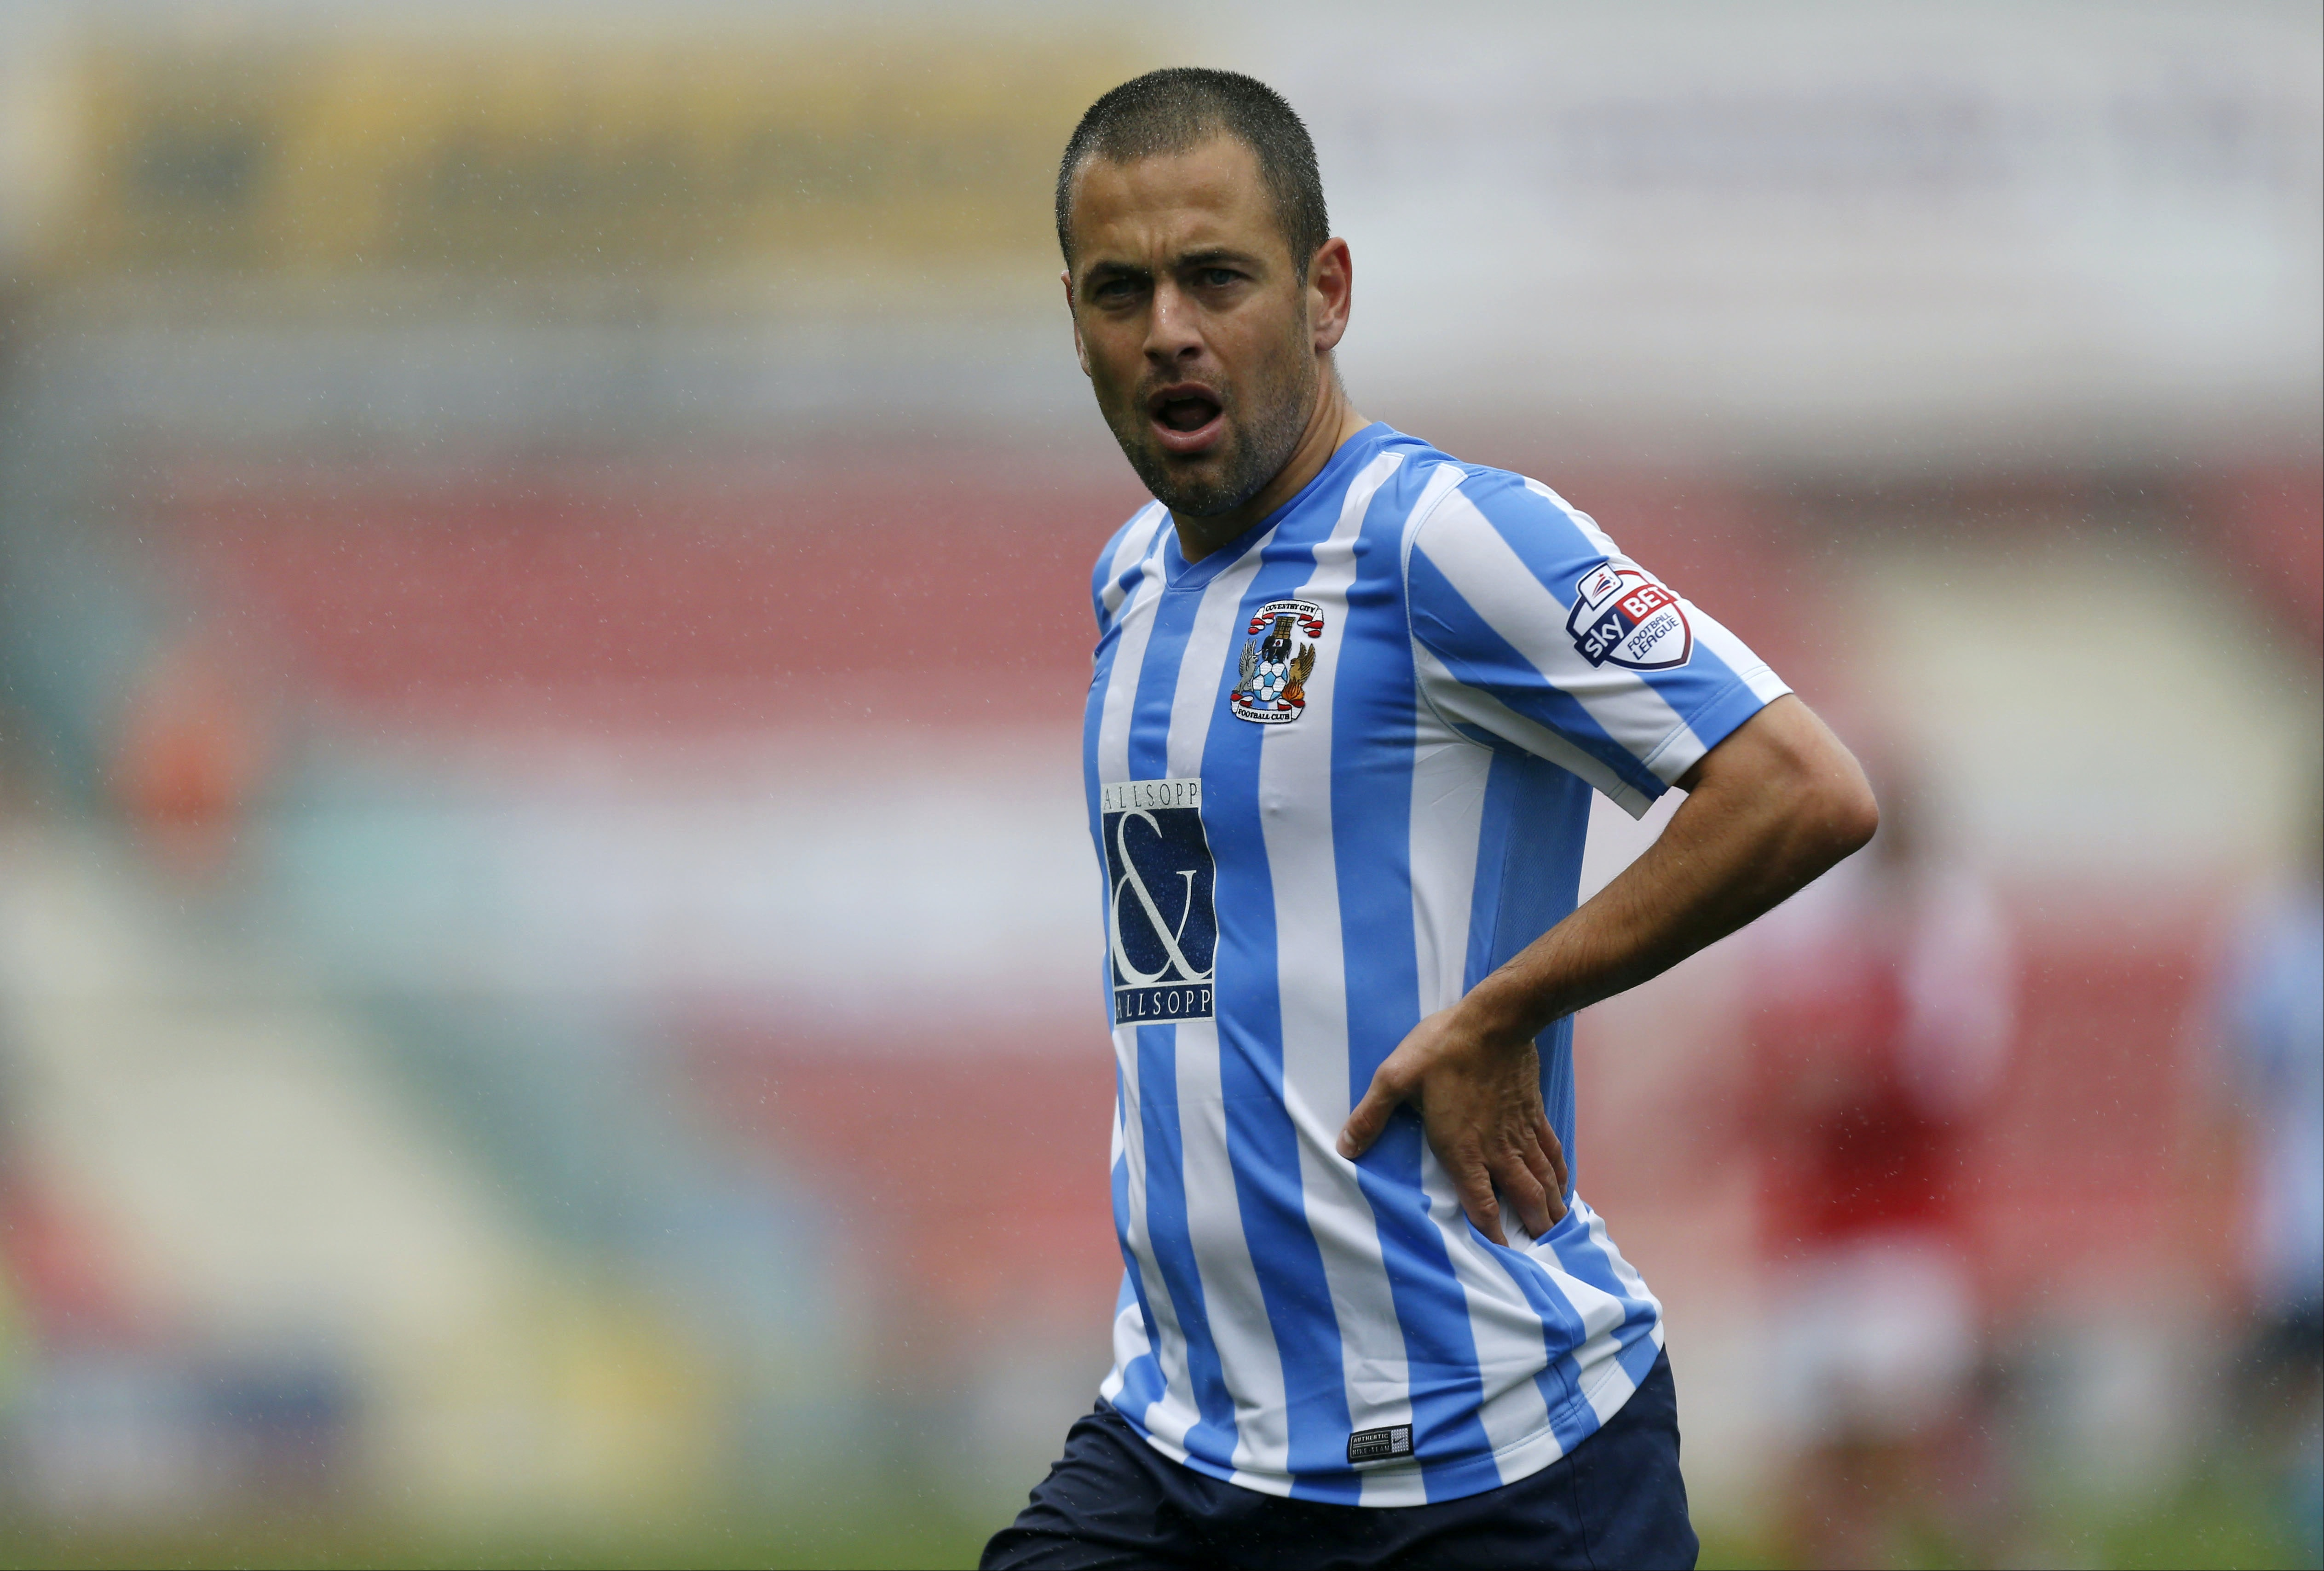 Soccer - Sky Bet League One - Swindon Town v Coventry City - County Ground